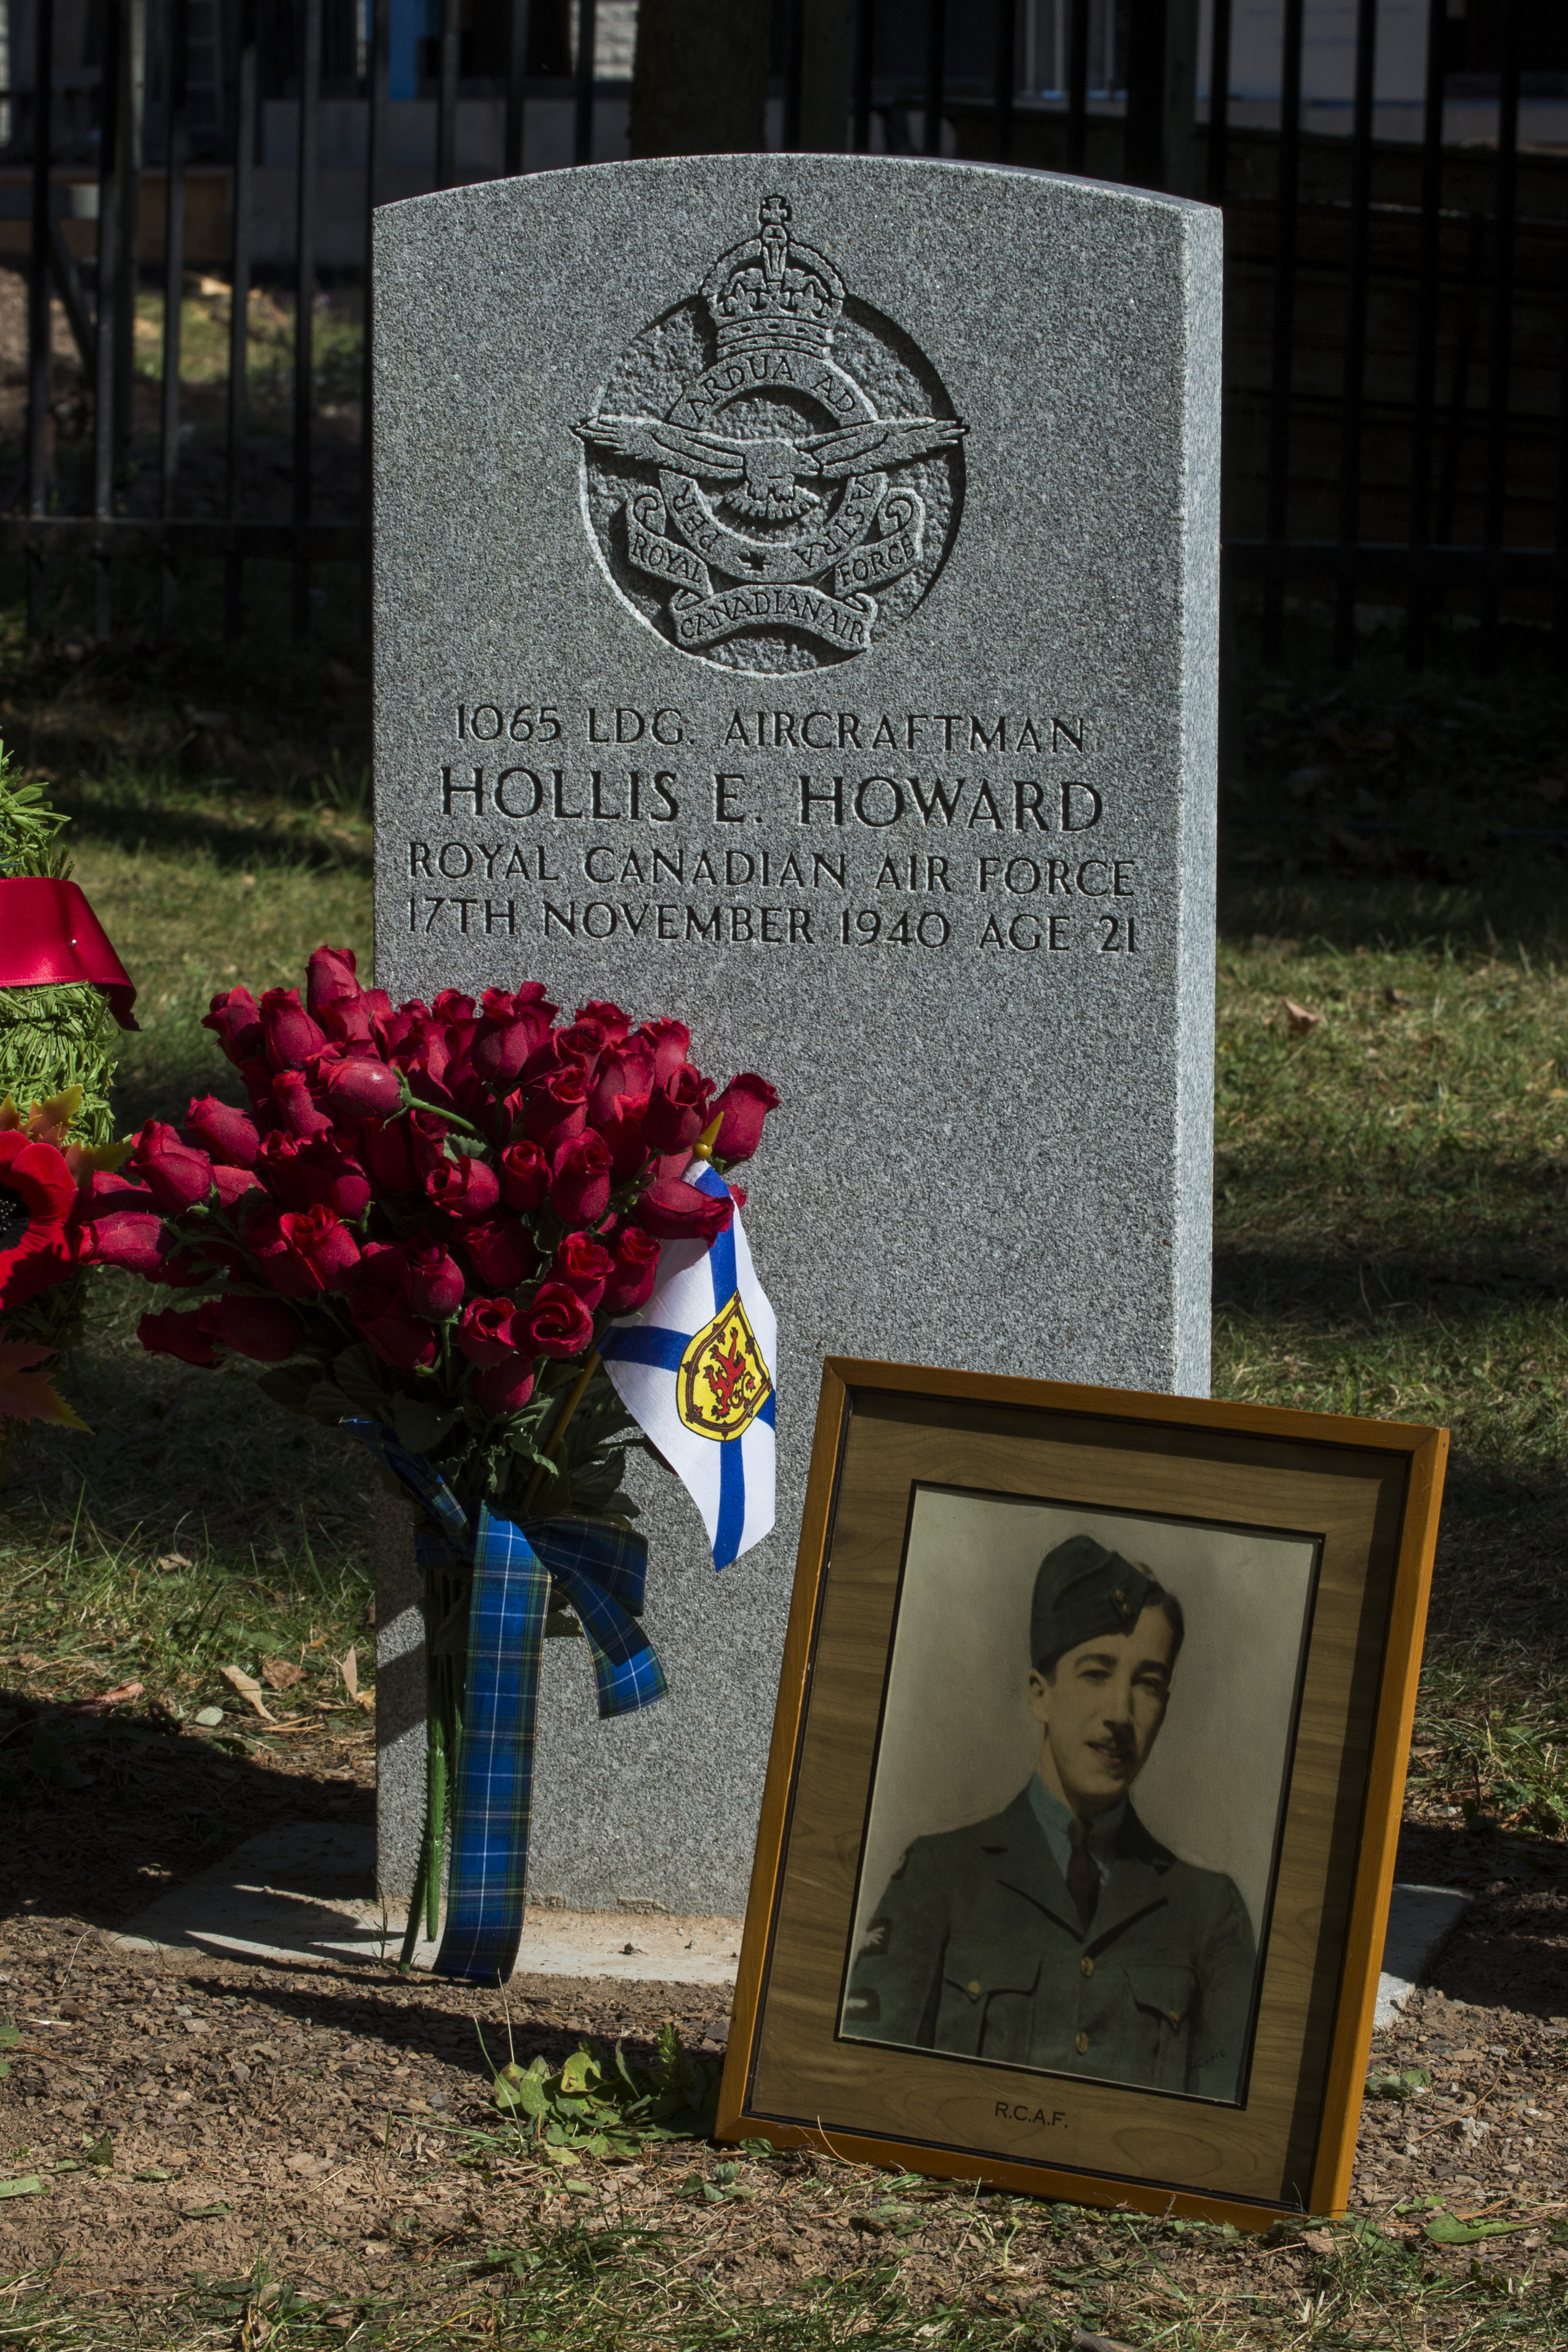 The grave of Leading Aircraftman Hollis Eugene Howard, at the Mount Hermon Cemetery in Quebec City, Quebec. The serviceman disappeared on 